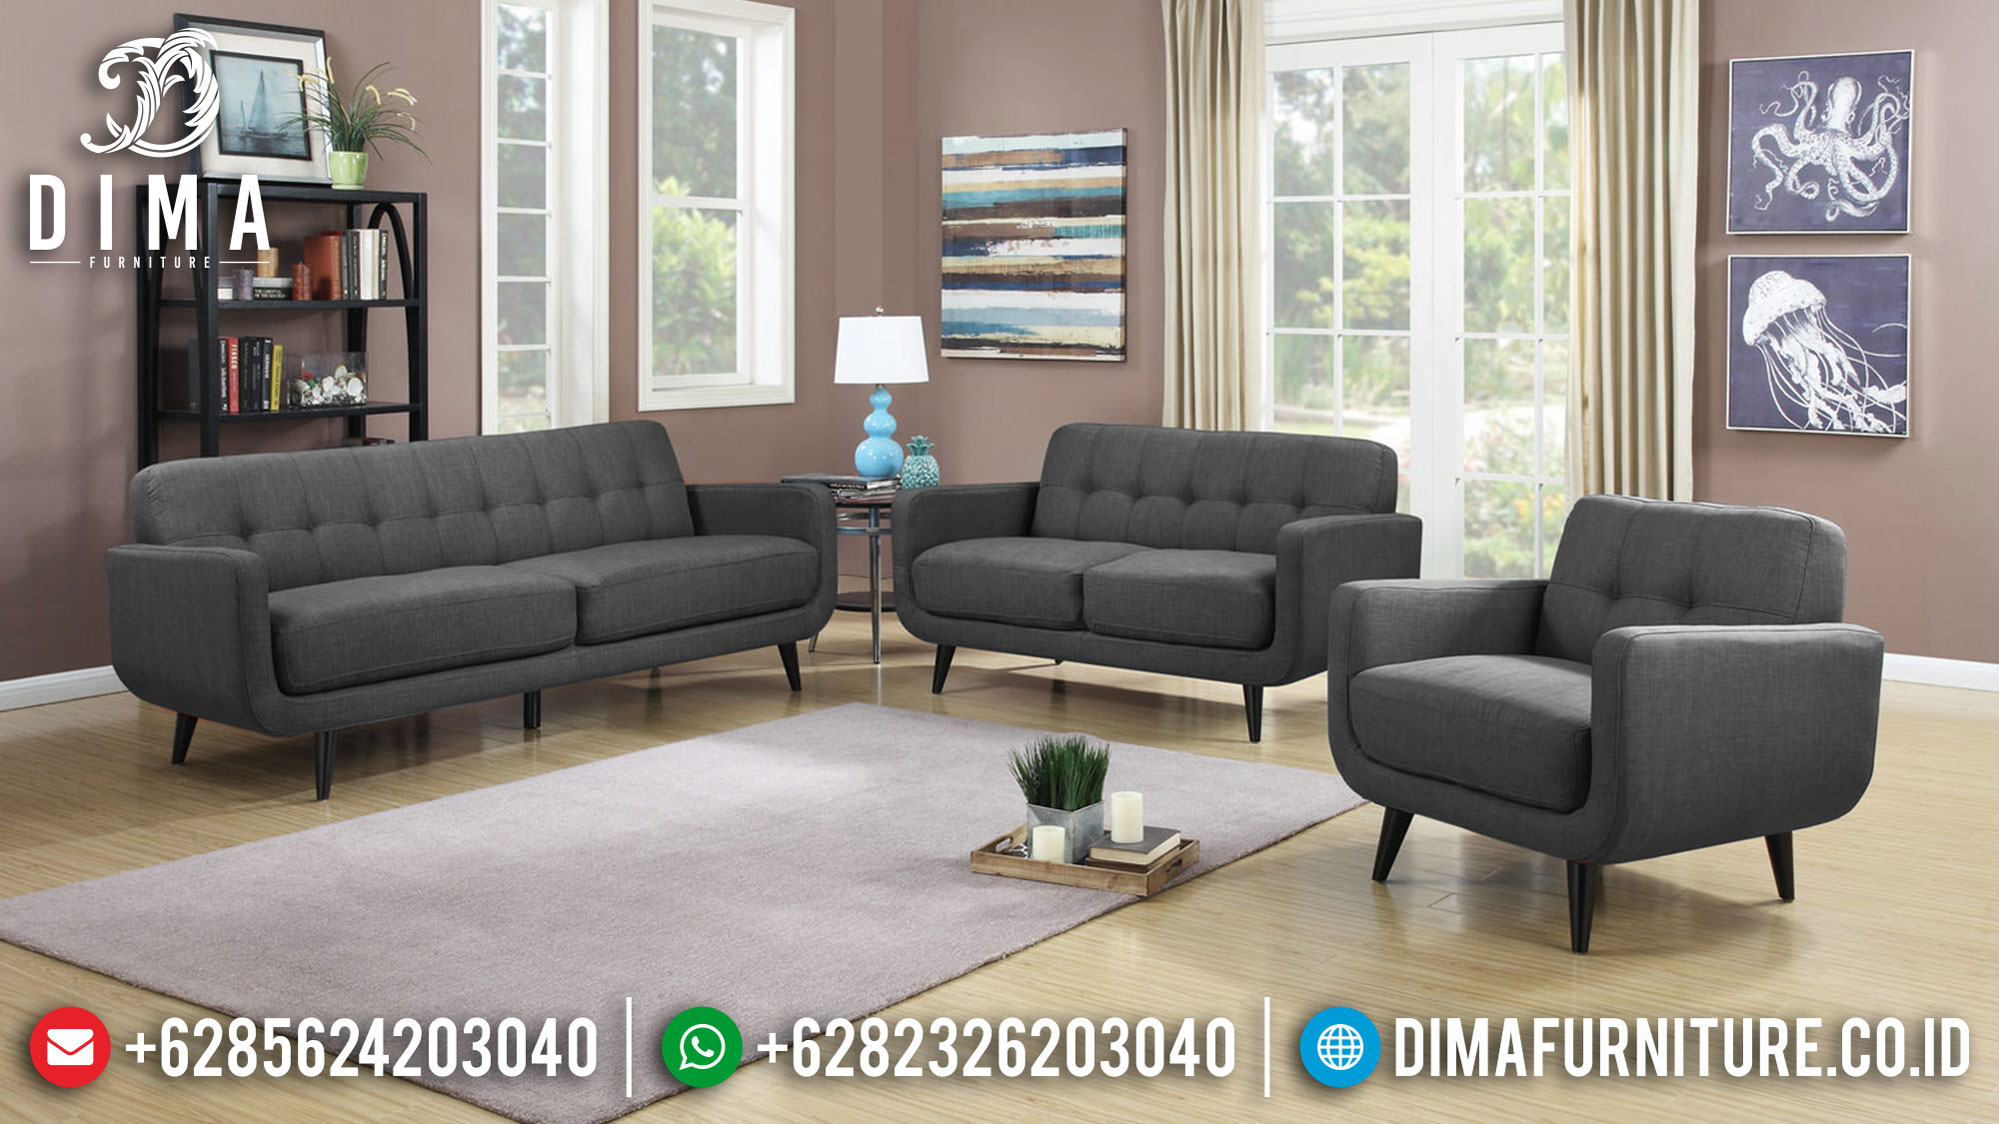 New Arrival Sofa Tamu Minimalis Grey Fabric Best Price Terbaru TTJ-0996